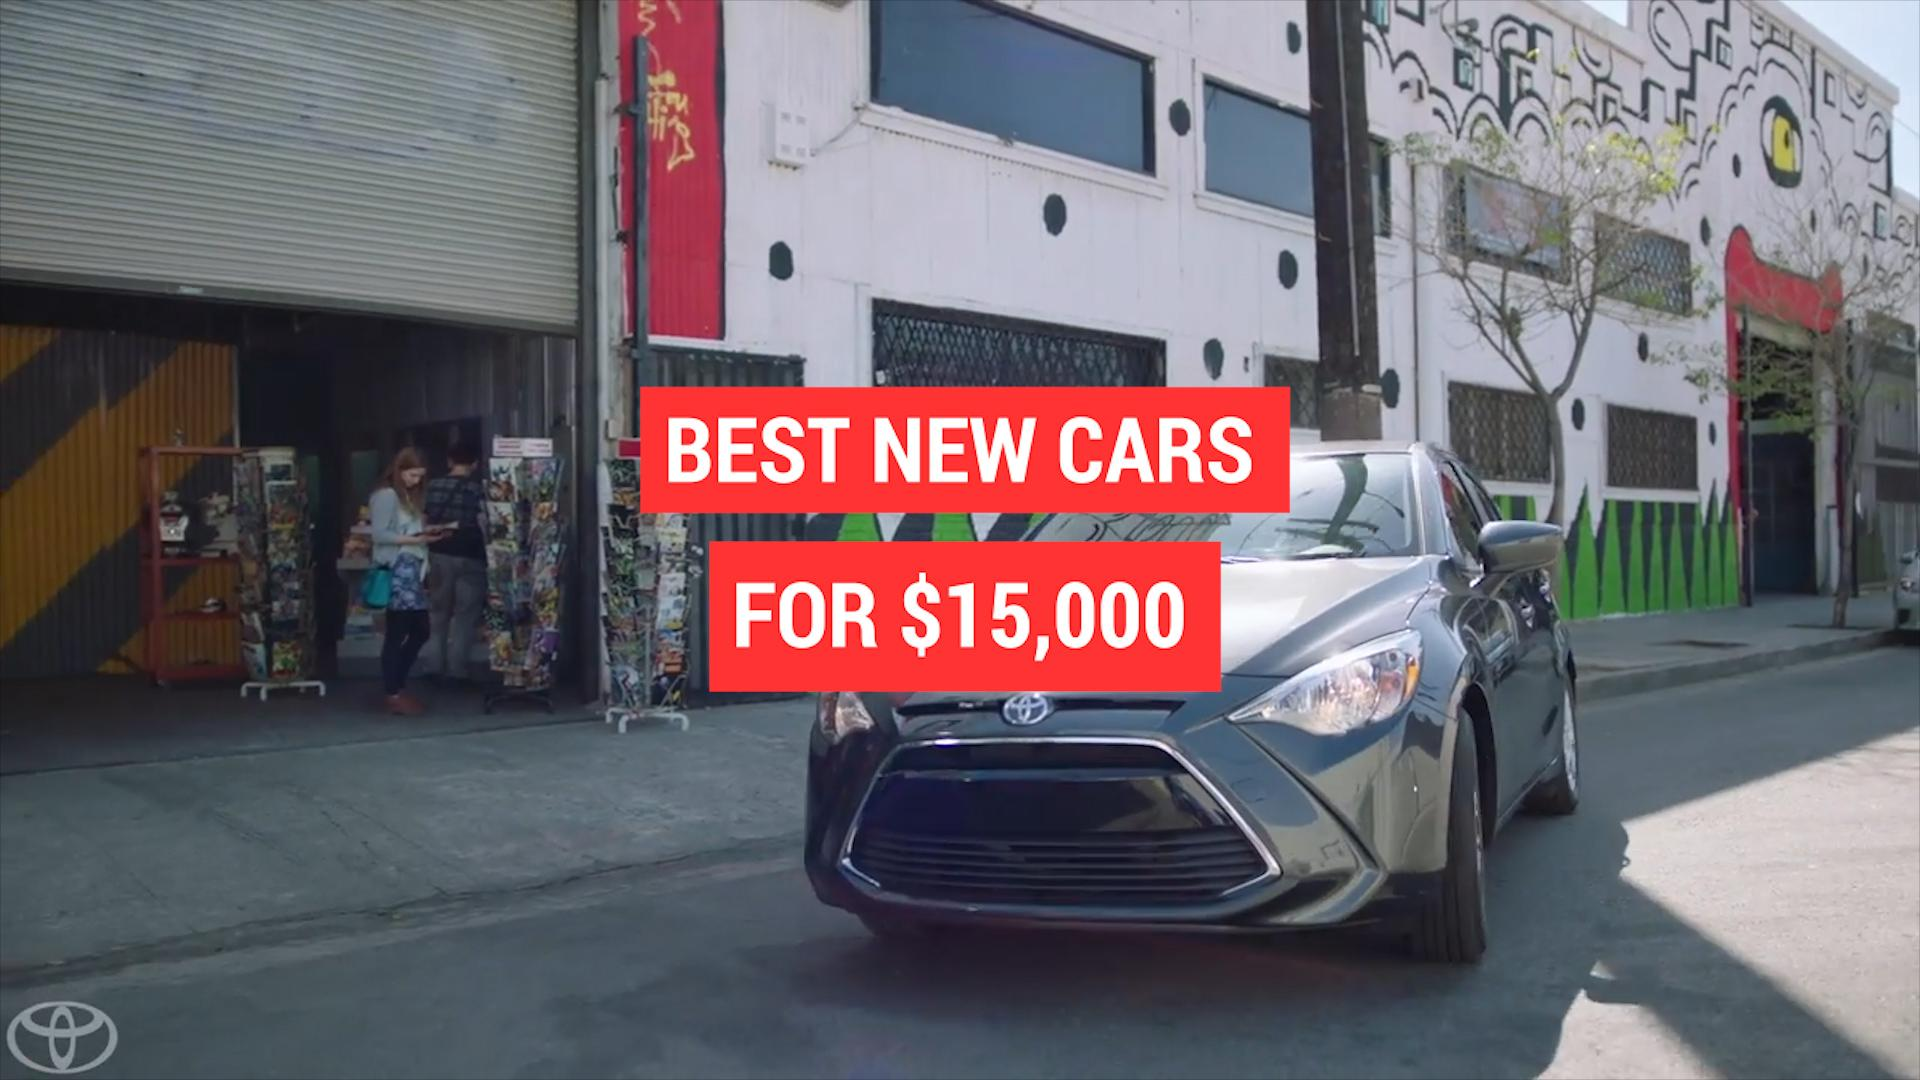 New car dealer tips and tricks to the best deal Autoblog